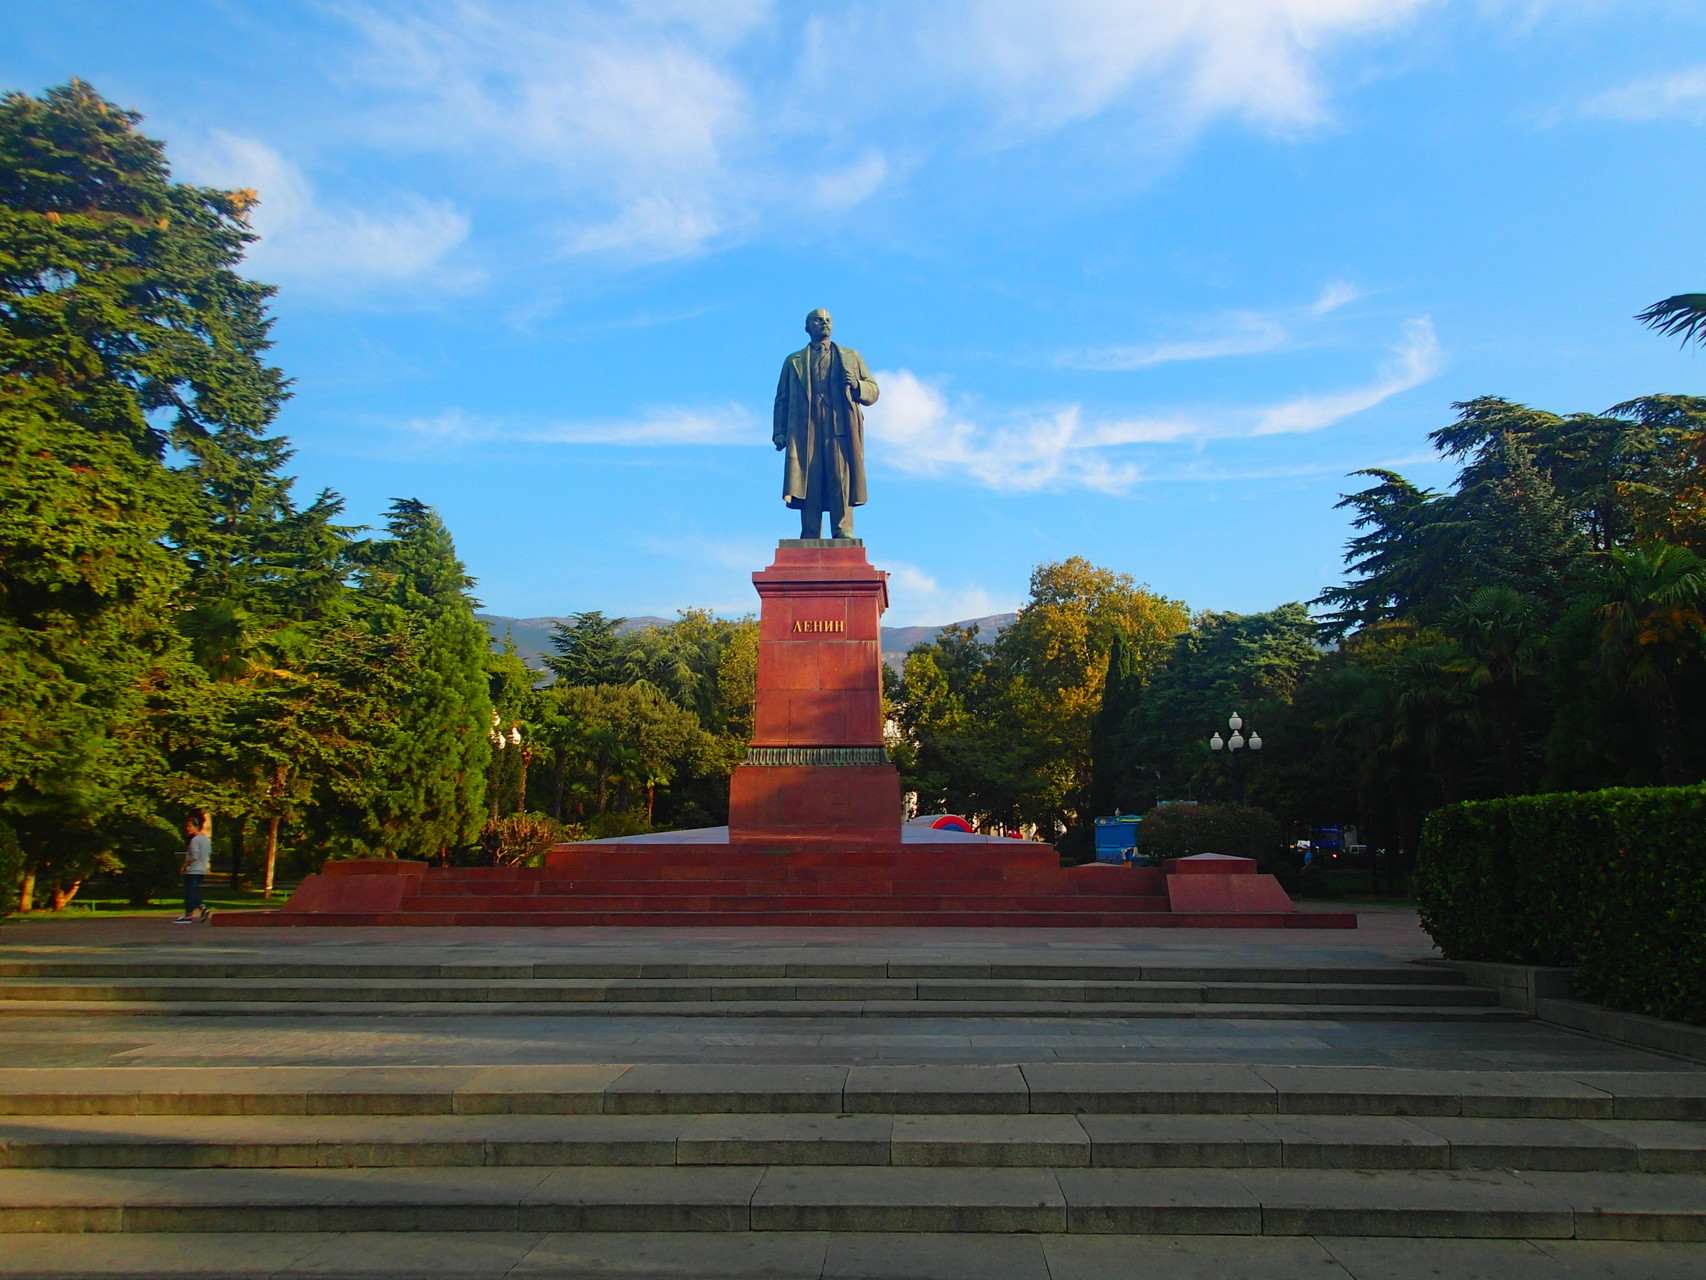 Lenin square in Yalta